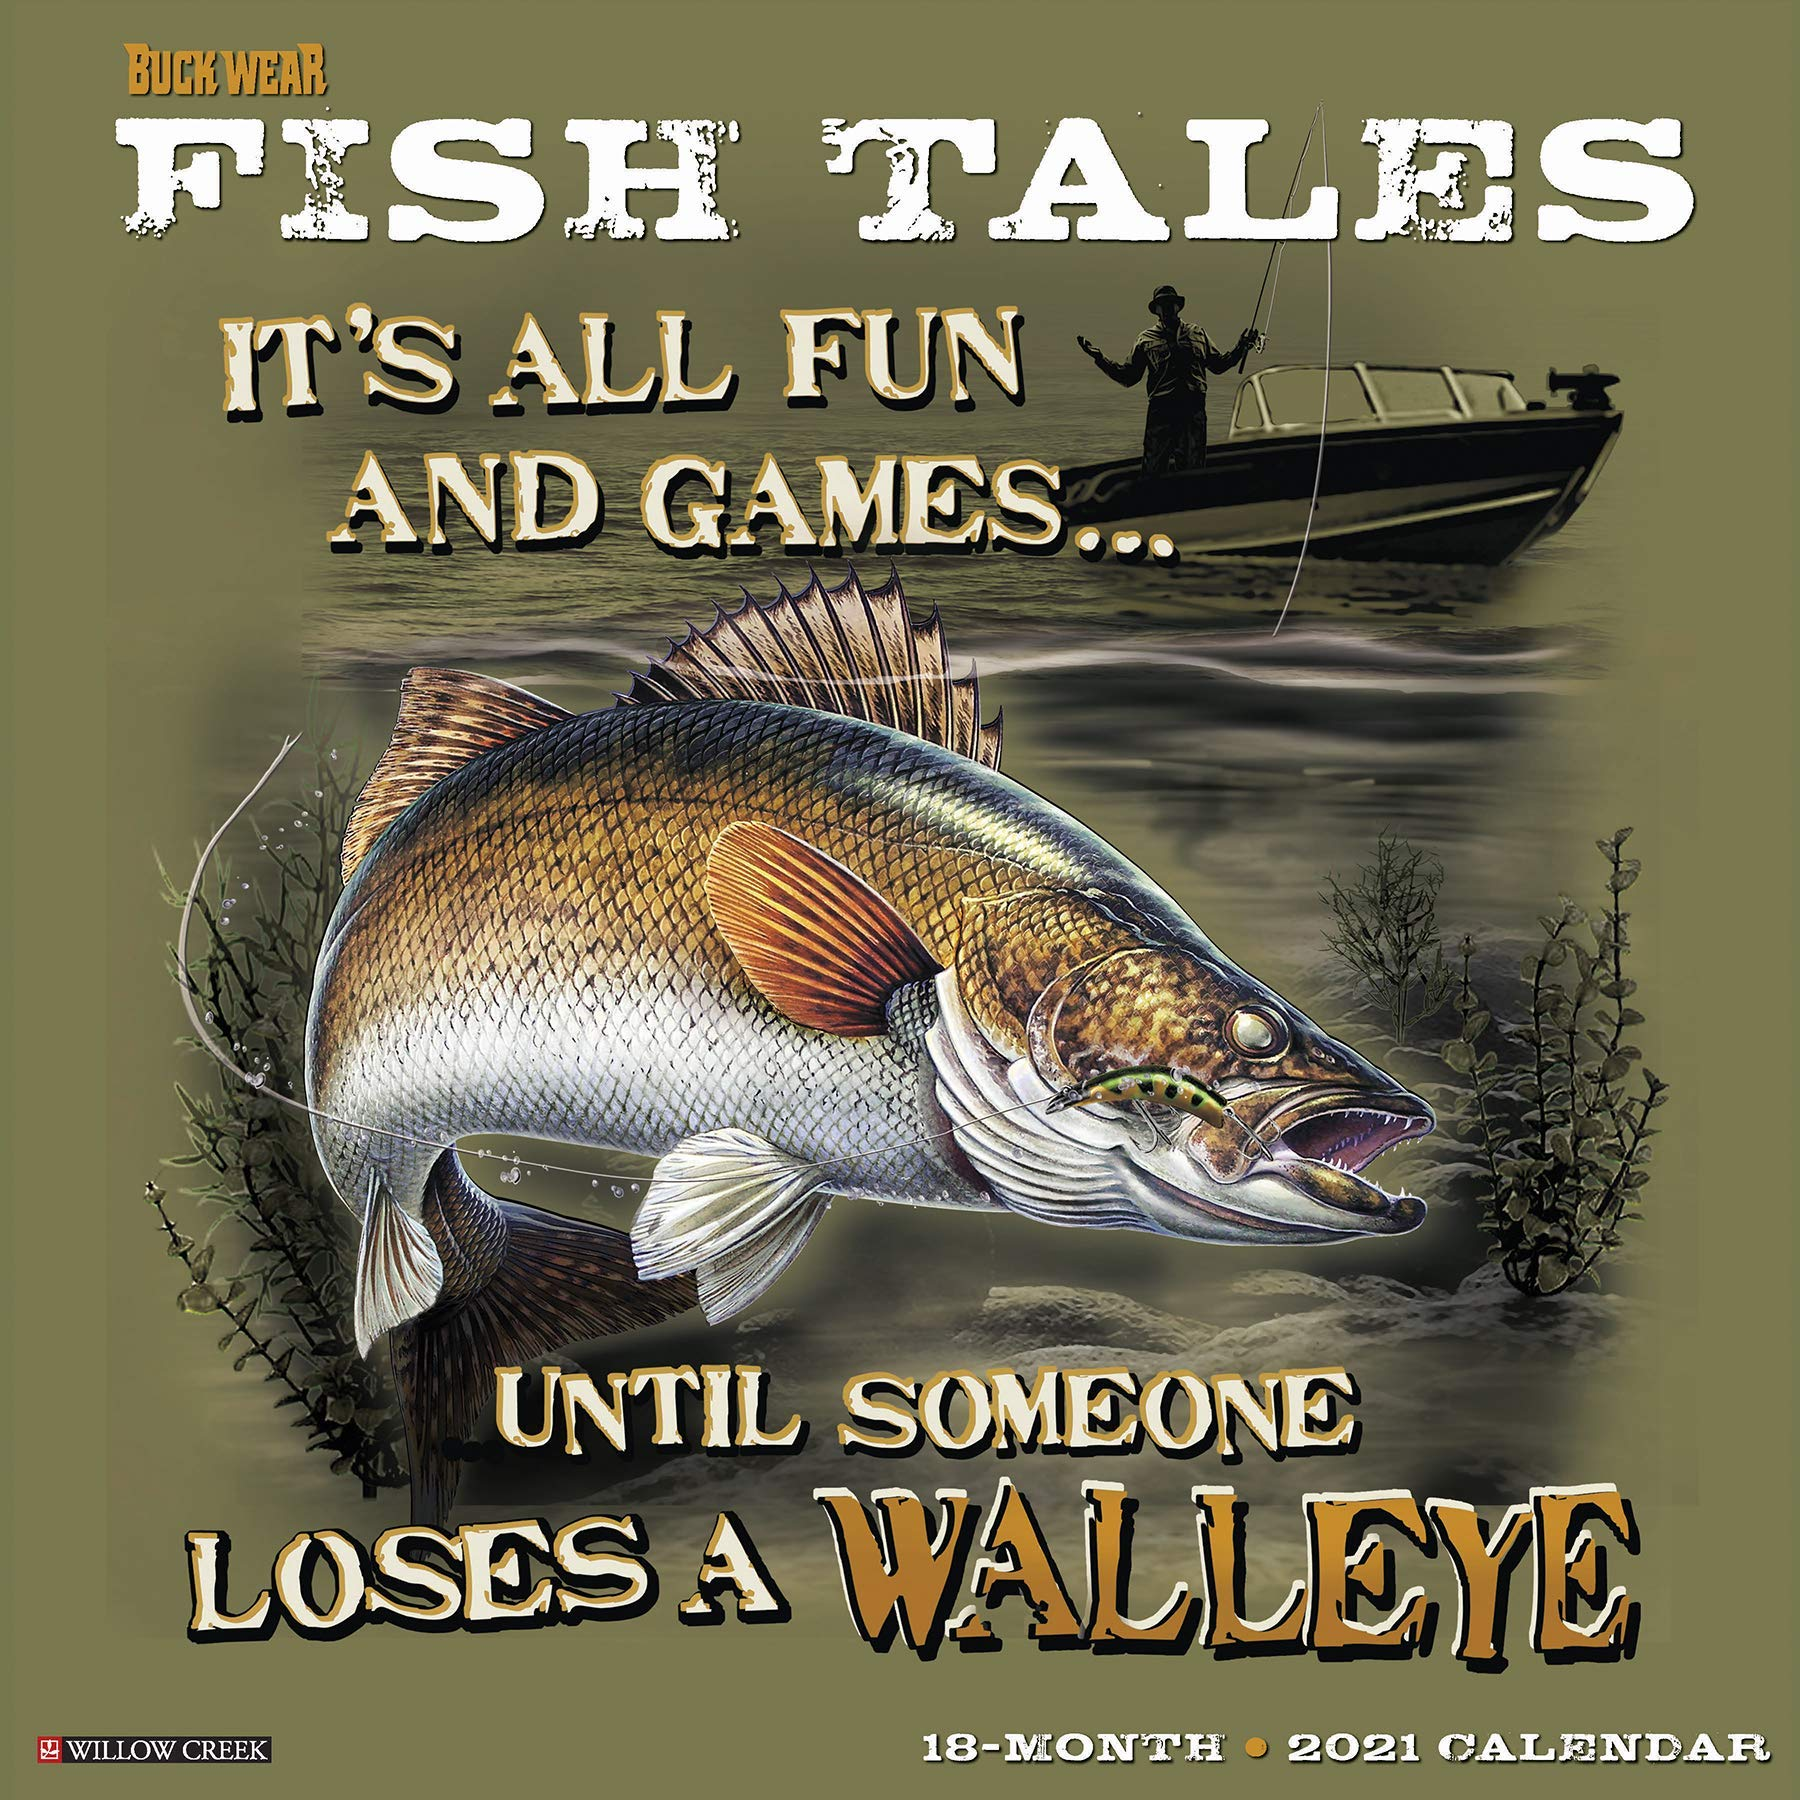 Image OfBuck Wear's Fishing Tales 2021 Wall Calendar